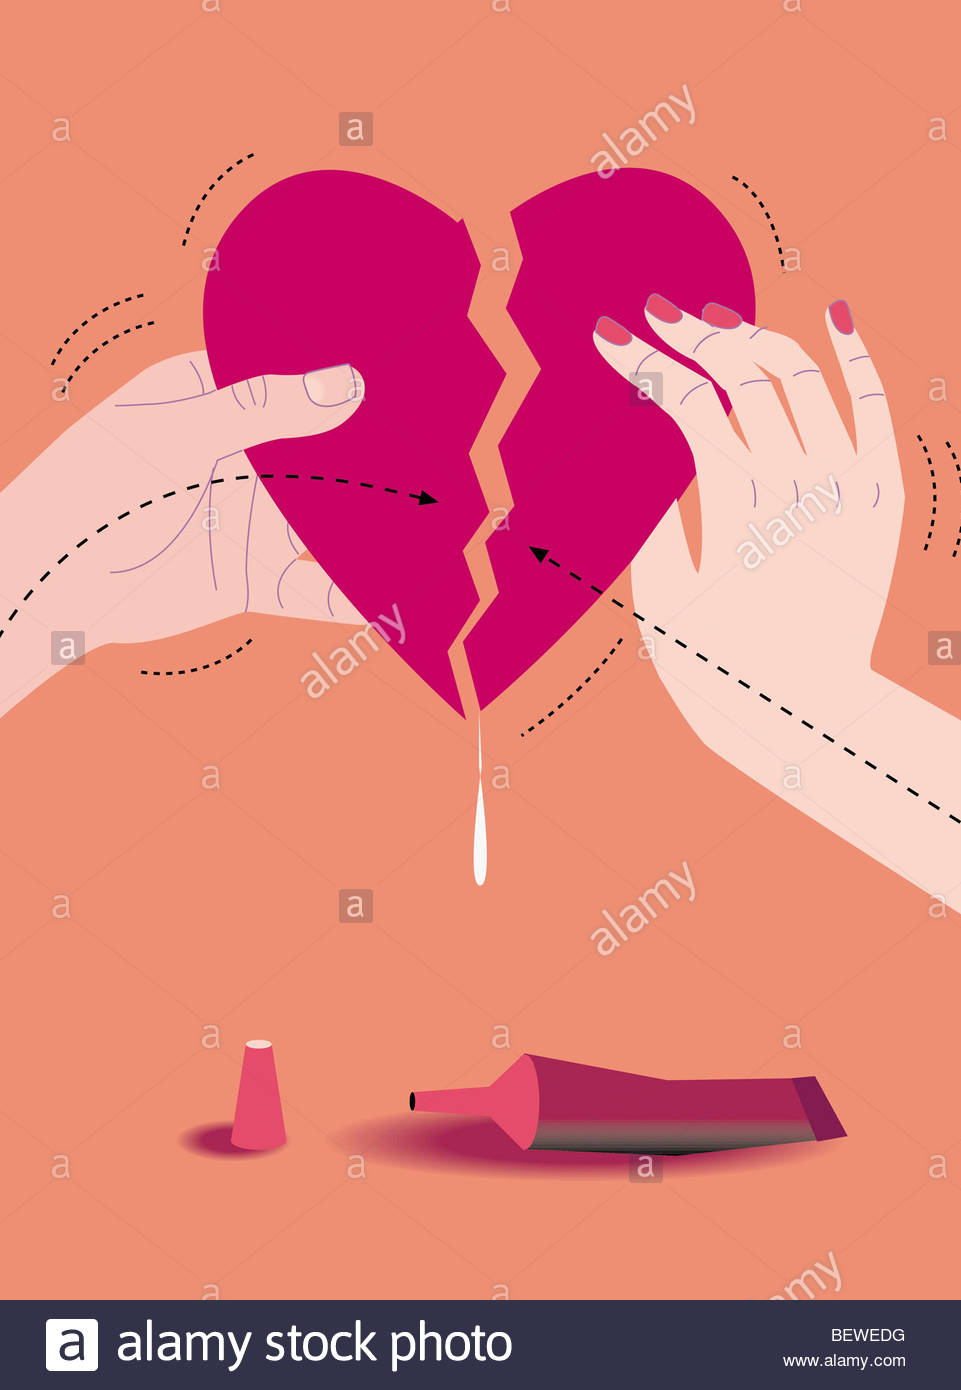 Man and woman gluing broken heart together - Stock Image